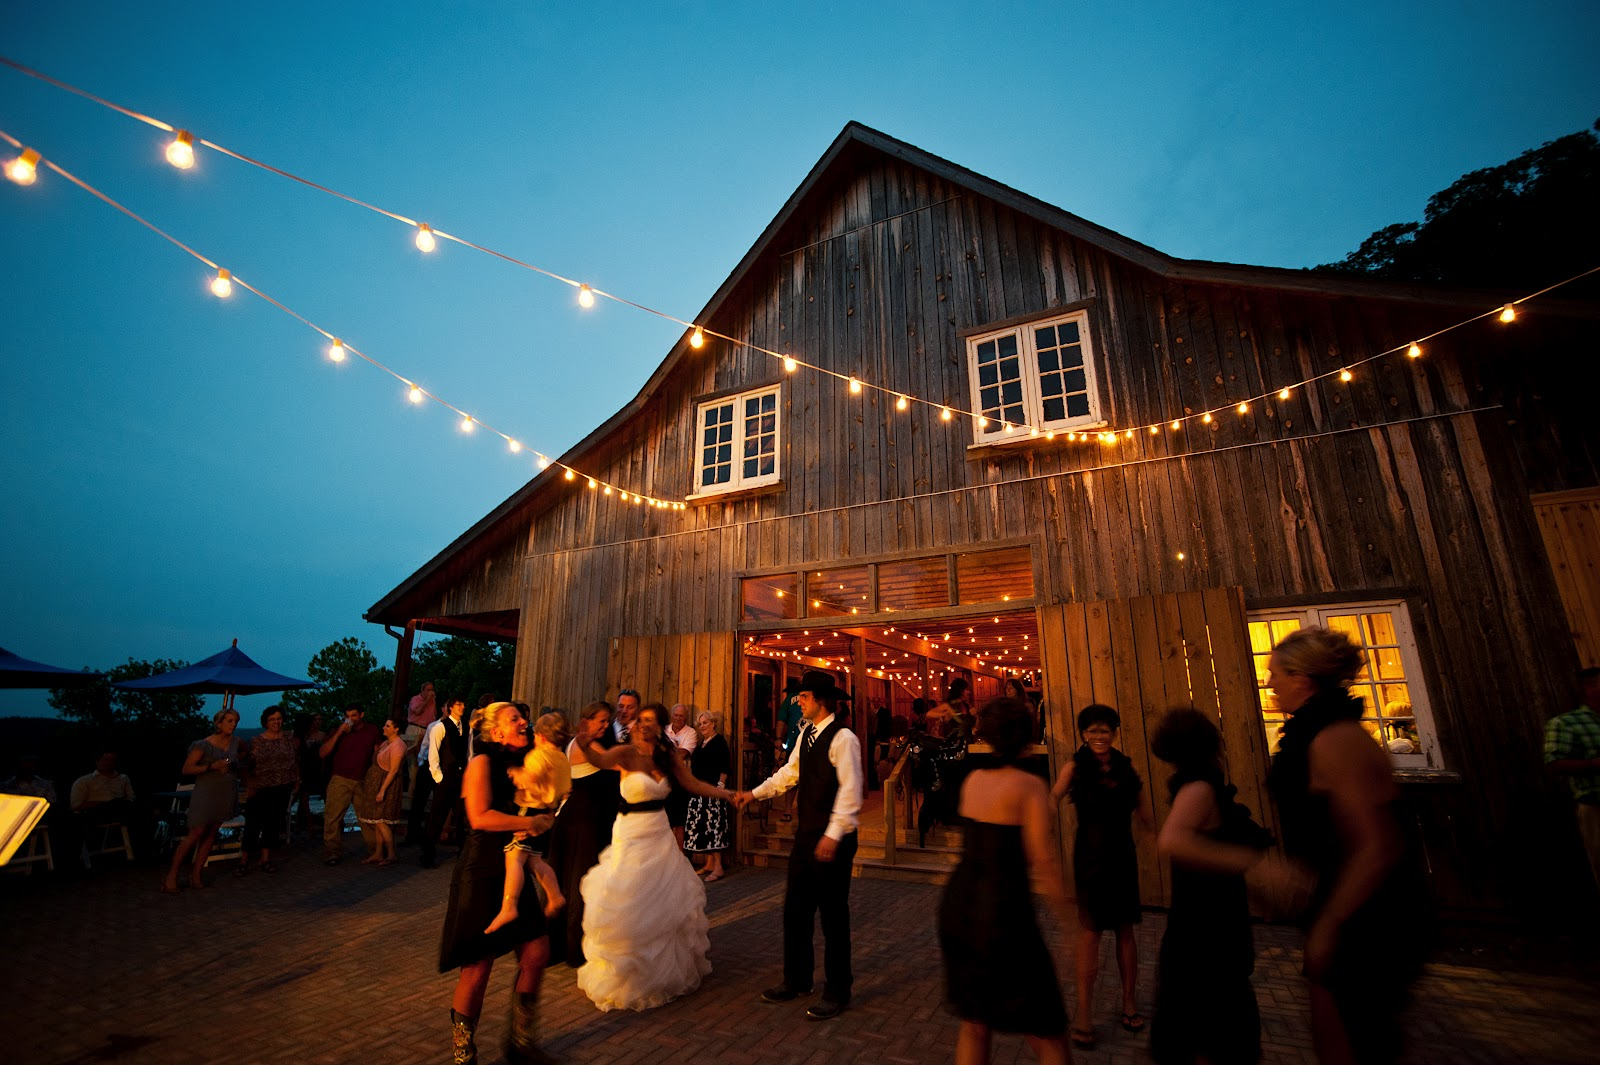 Our First Barn Wedding At Chaumette Chaumette